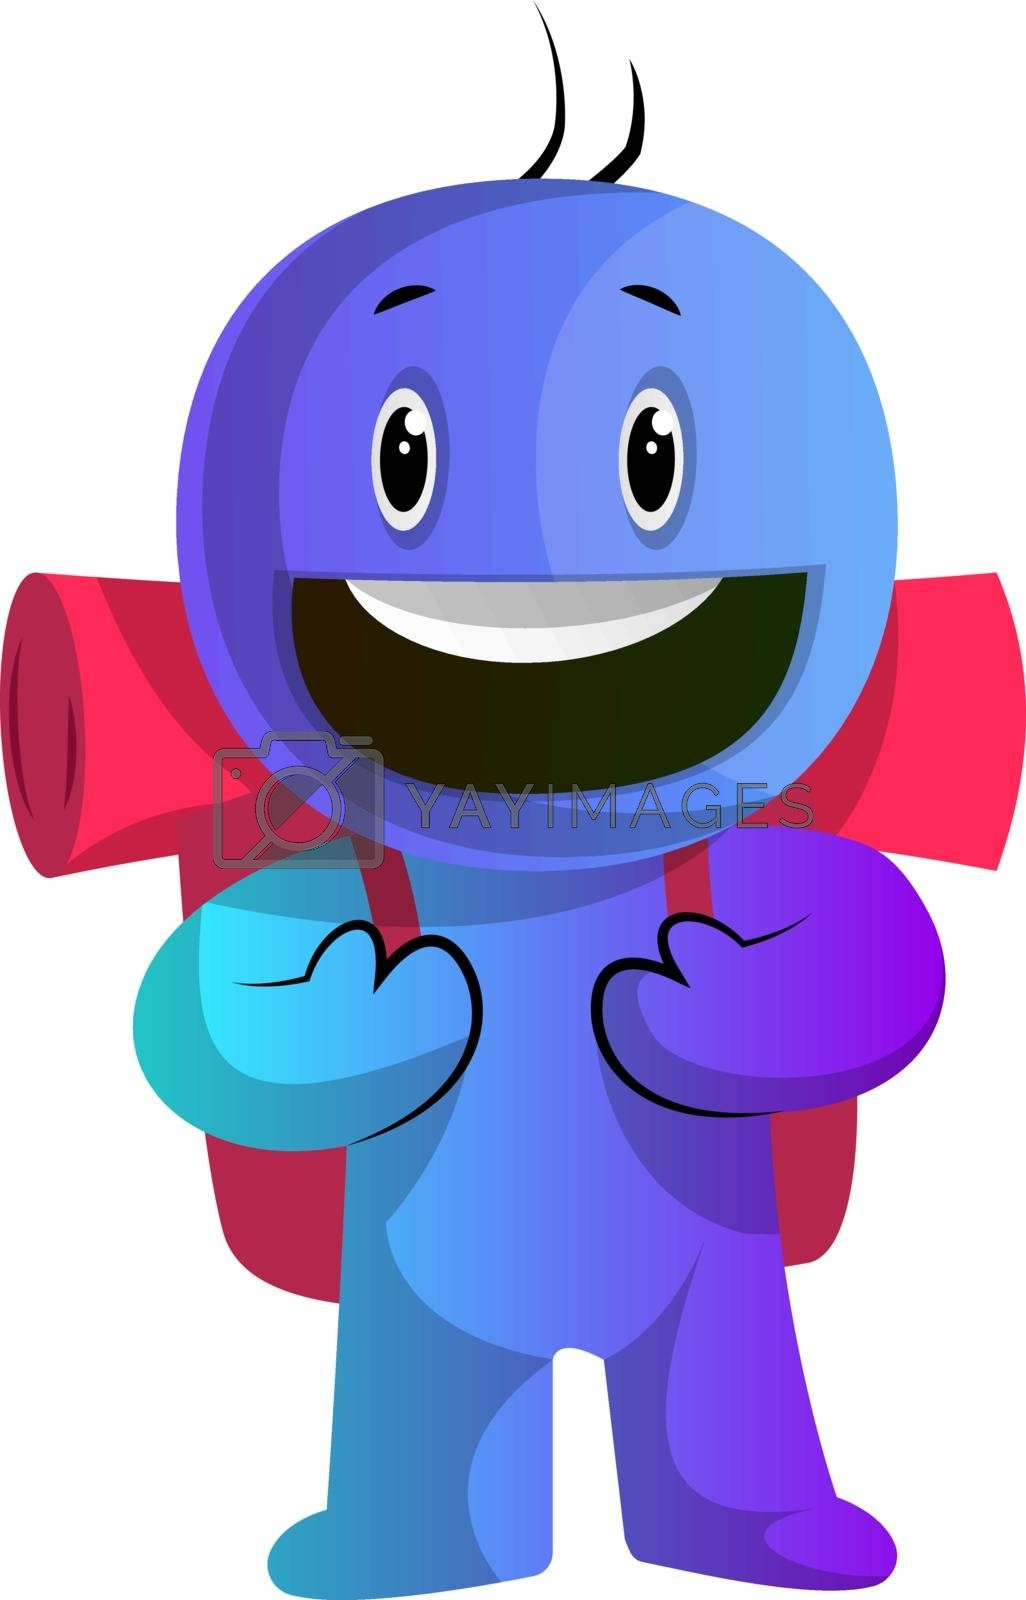 Royalty free image of Blue cartoon caracter with a backpack illustration vector on whi by Morphart